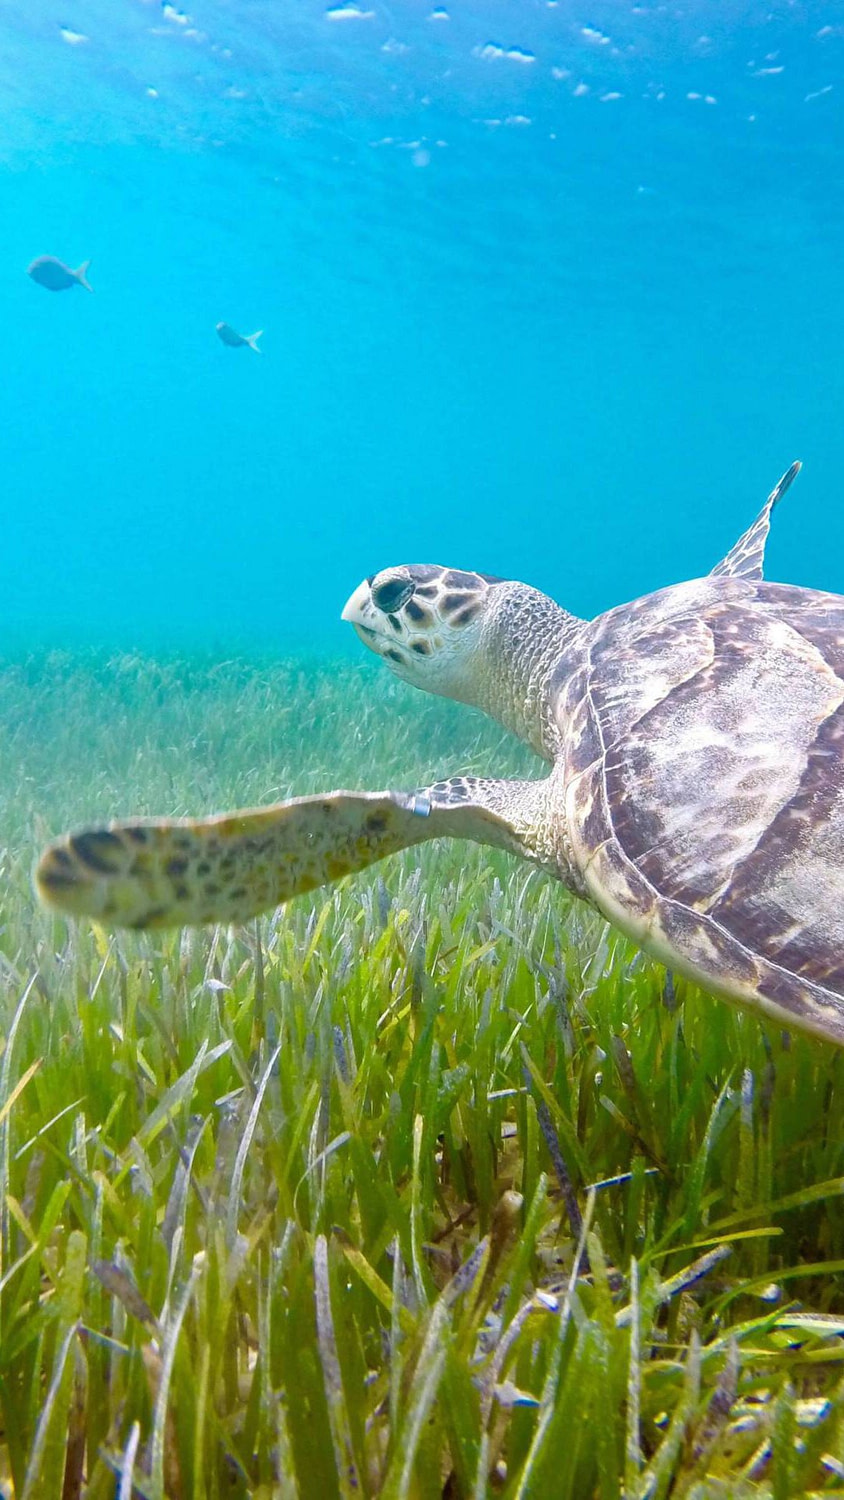 A scuba diving photo of a turtle roaming around the ocean